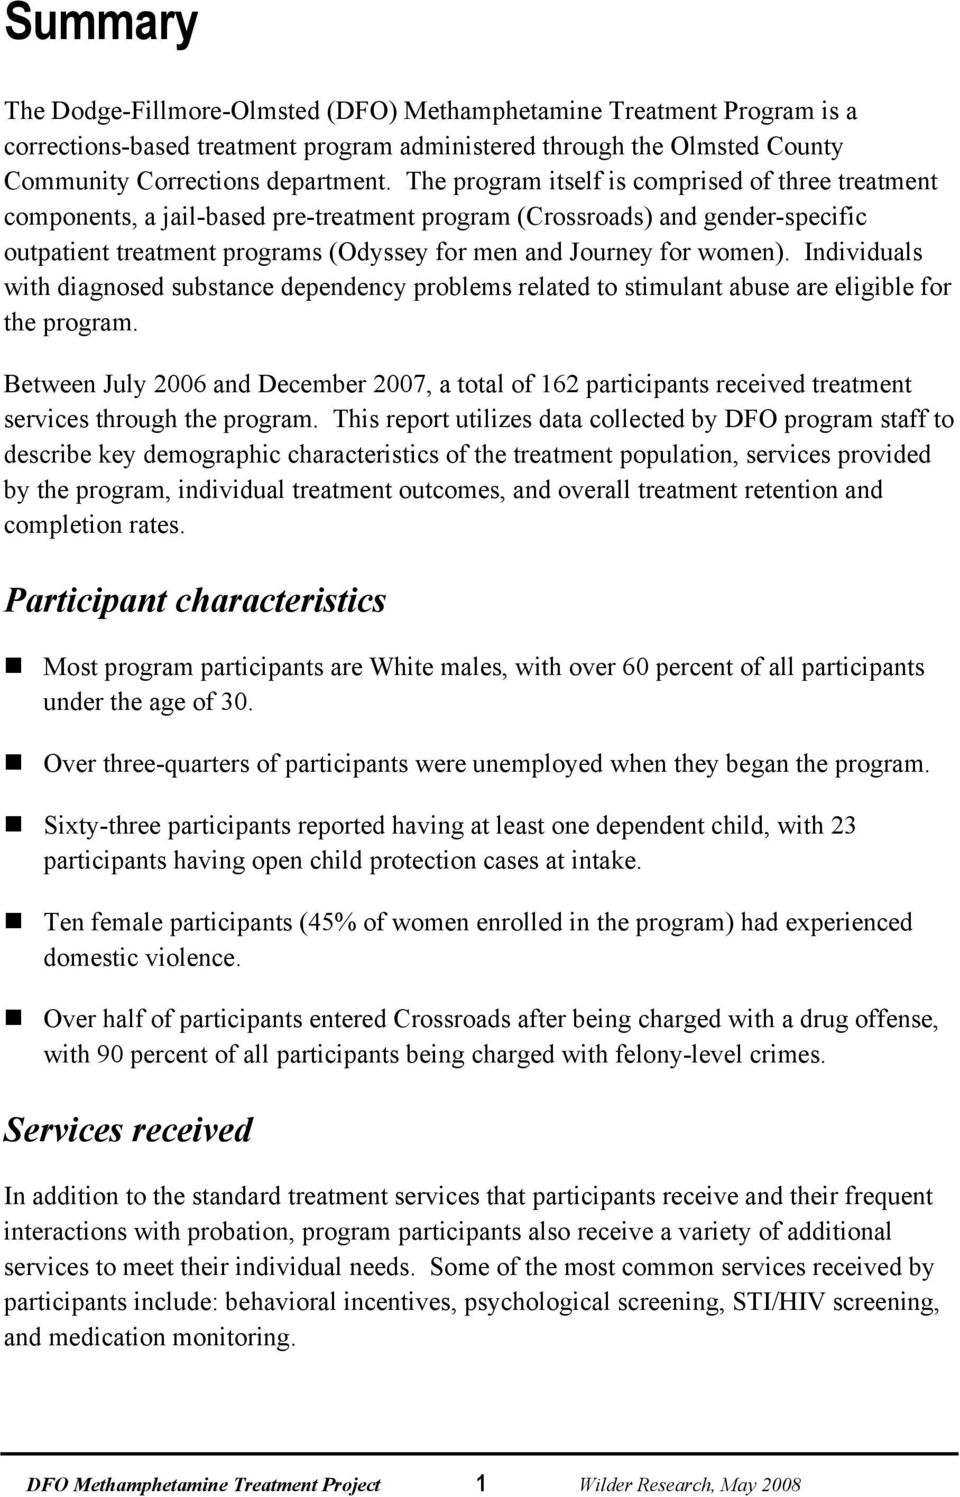 women). Individuals with diagnosed substance dependency problems related to stimulant abuse are eligible for the program.